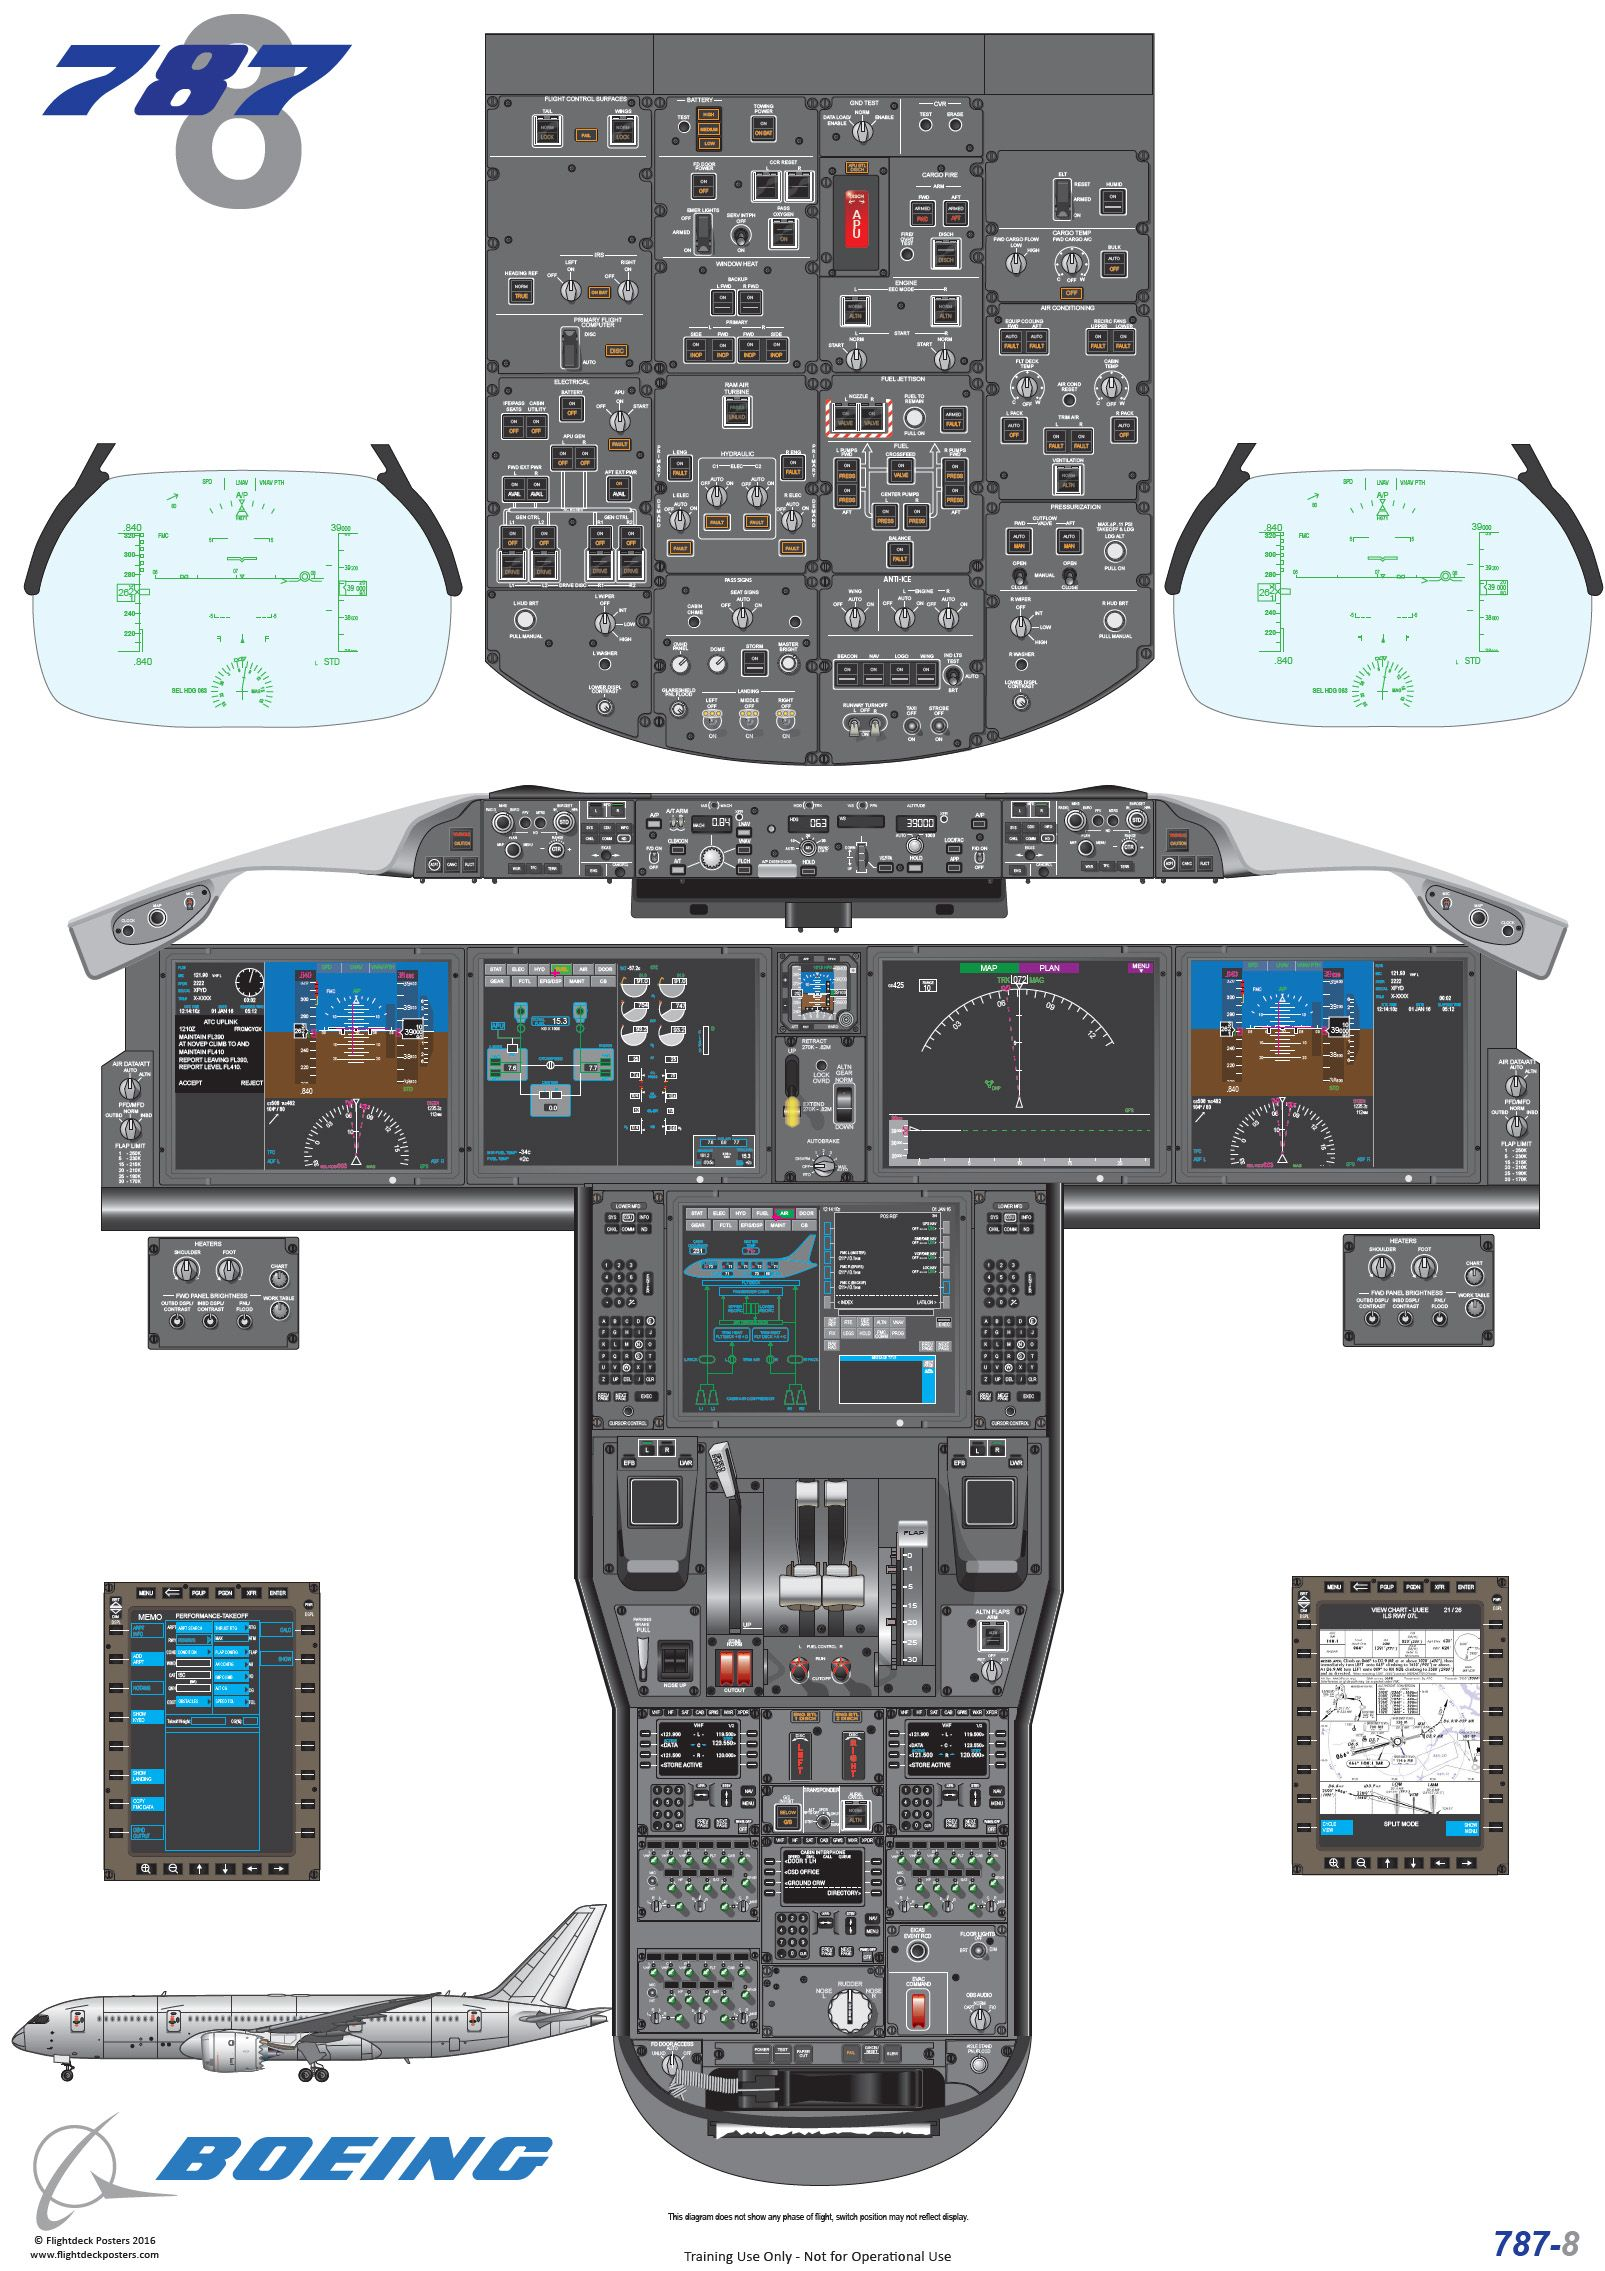 boeing 787 8 cockpit diagram used for training pilots [ 1605 x 2271 Pixel ]